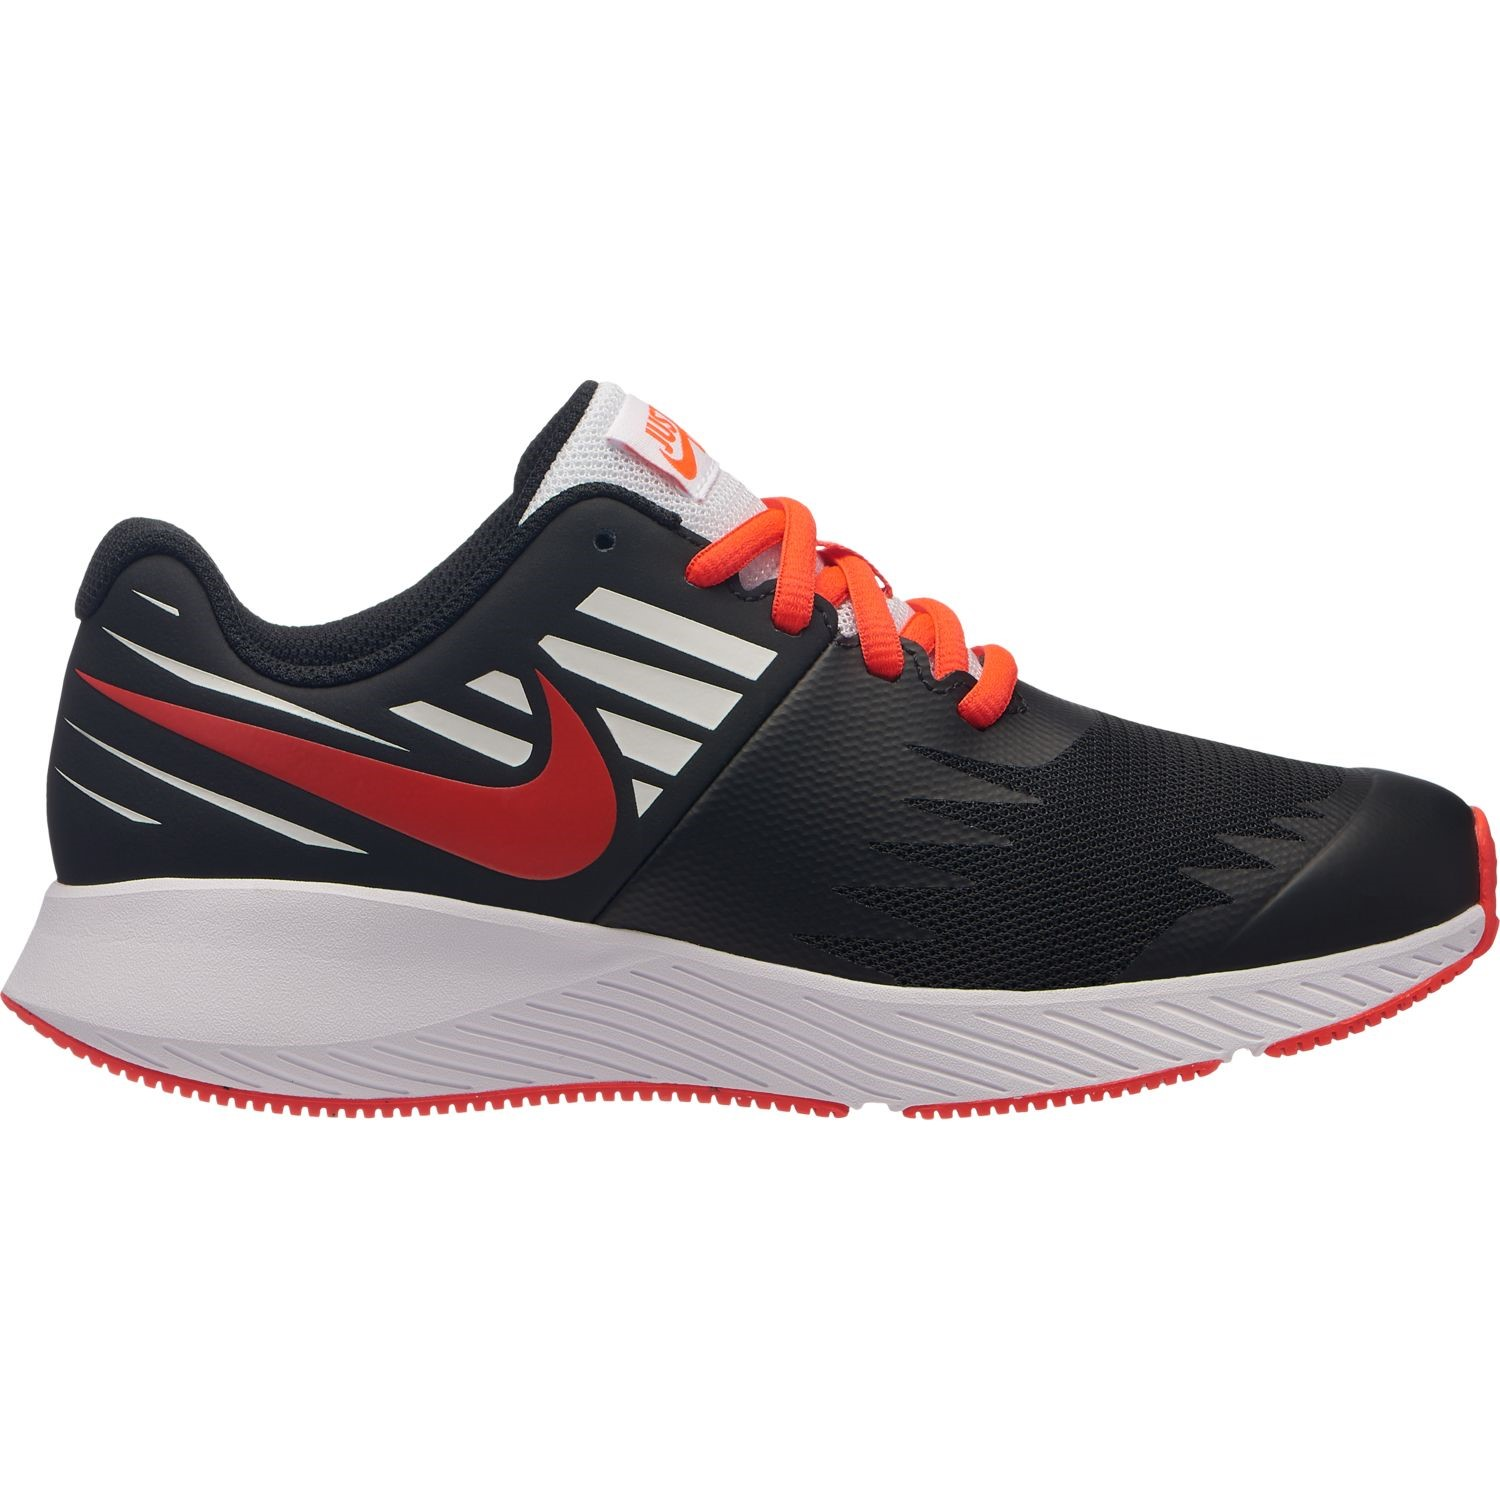 6b6631c6058 Nike Star Runner JDI GS - Kids Boys Running Shoes - Black Bright Crimson